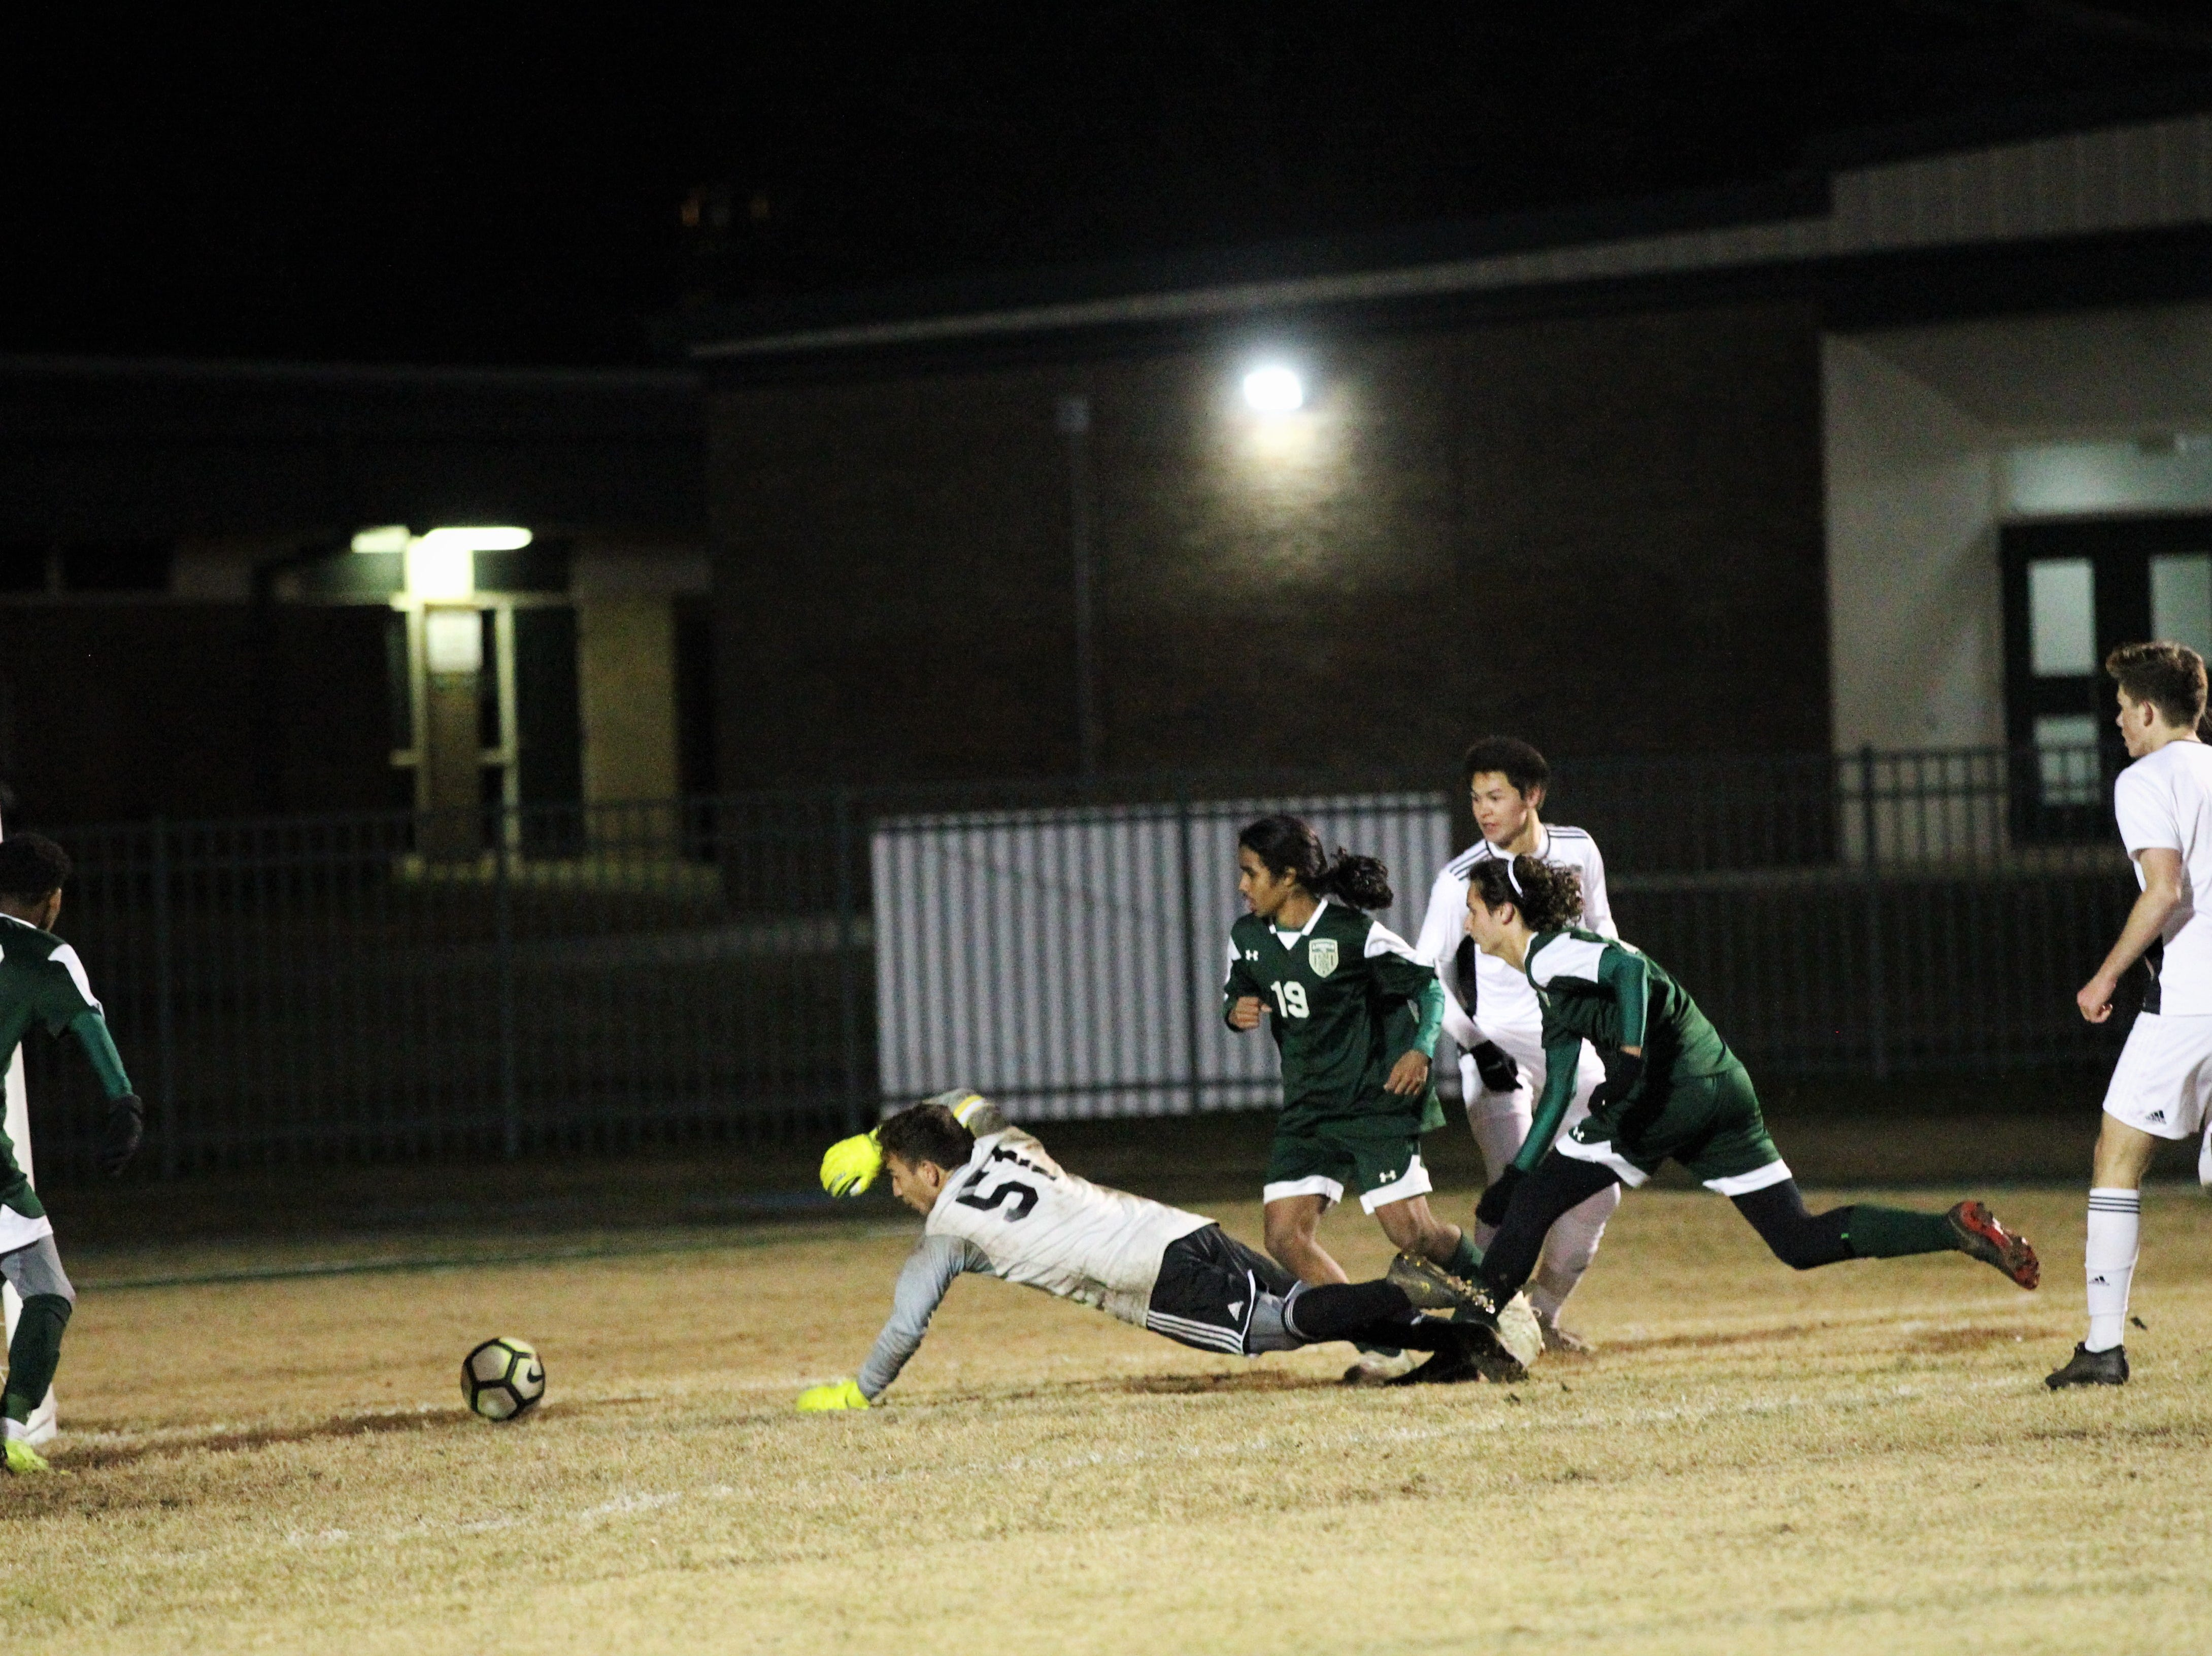 Chiles keeper Abraheim Darwish dives back towards goal as a shot squirts past, but it goes just wide of goal as Chiles' boys soccer team beat Lincoln 1-0 in a District 2-4A semifinal on Jan. 30, 2019.